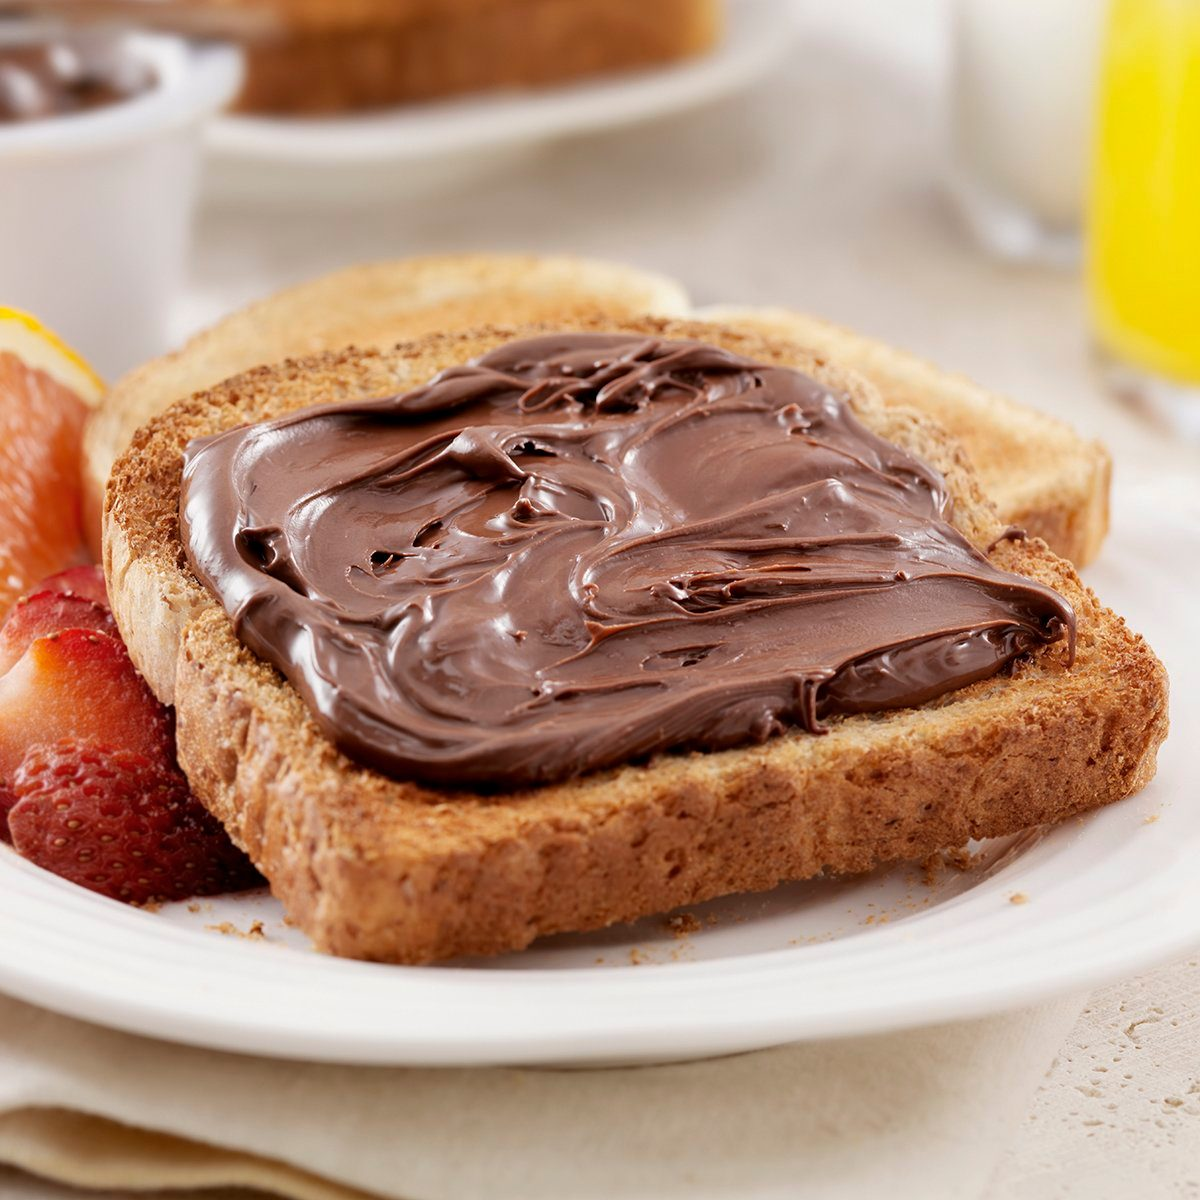 Chocolate Hazelnut Spread on Toast with Fresh Fruit- Photographed on Hasselblad H3D2-39mb Camera